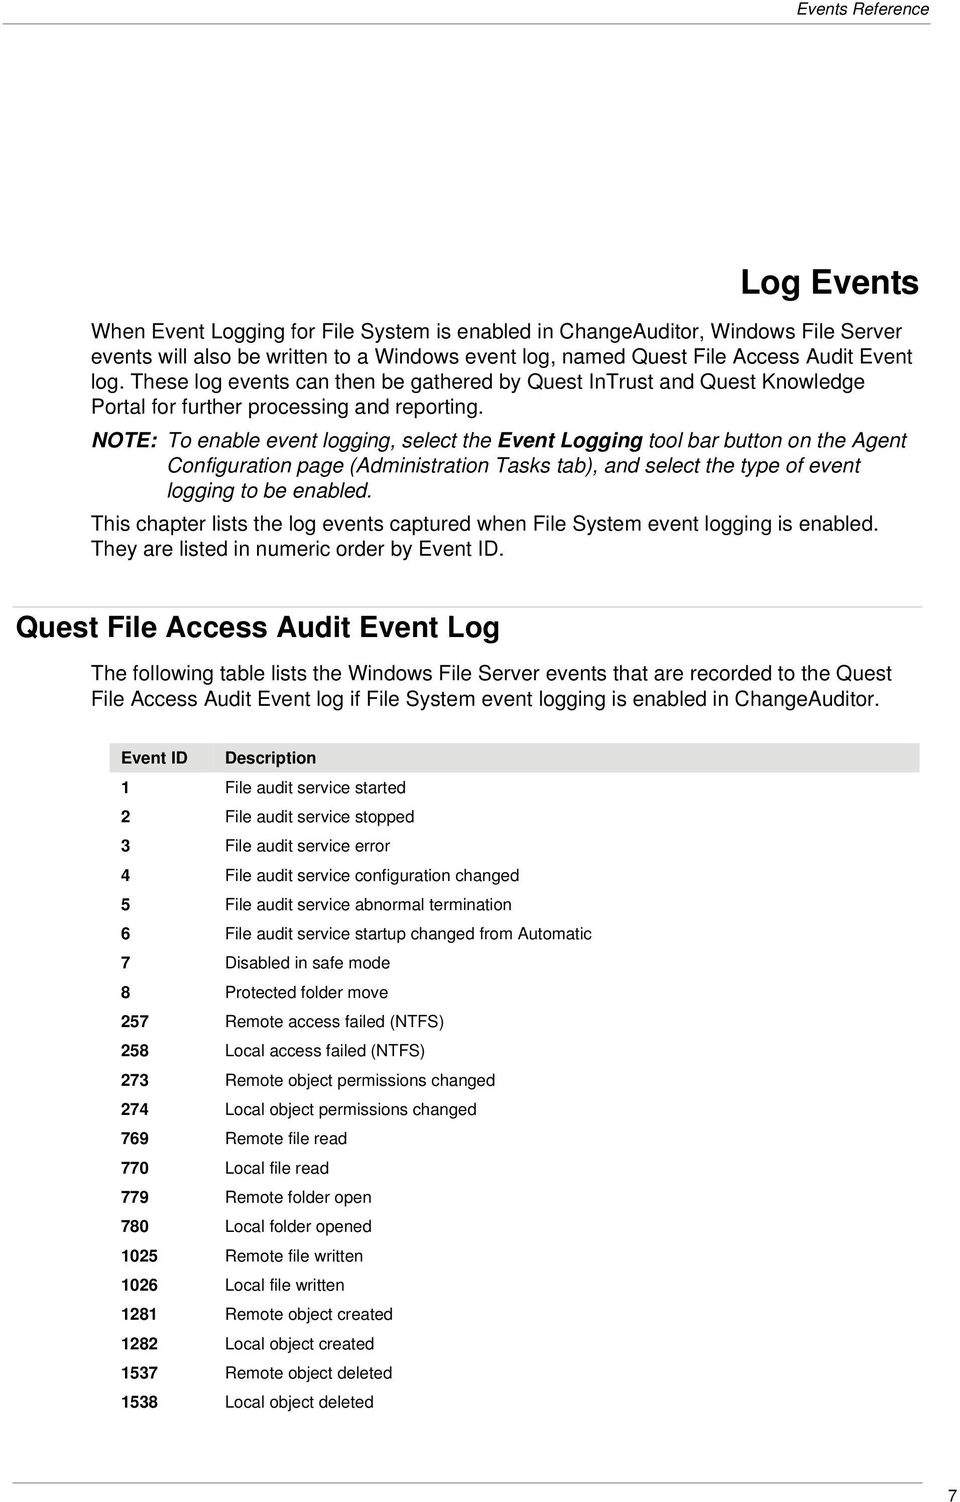 NOTE: To enable event logging, select the Event Logging tool bar button on the Agent Configuration page (Administration Tasks tab), and select the type of event logging to be enabled.